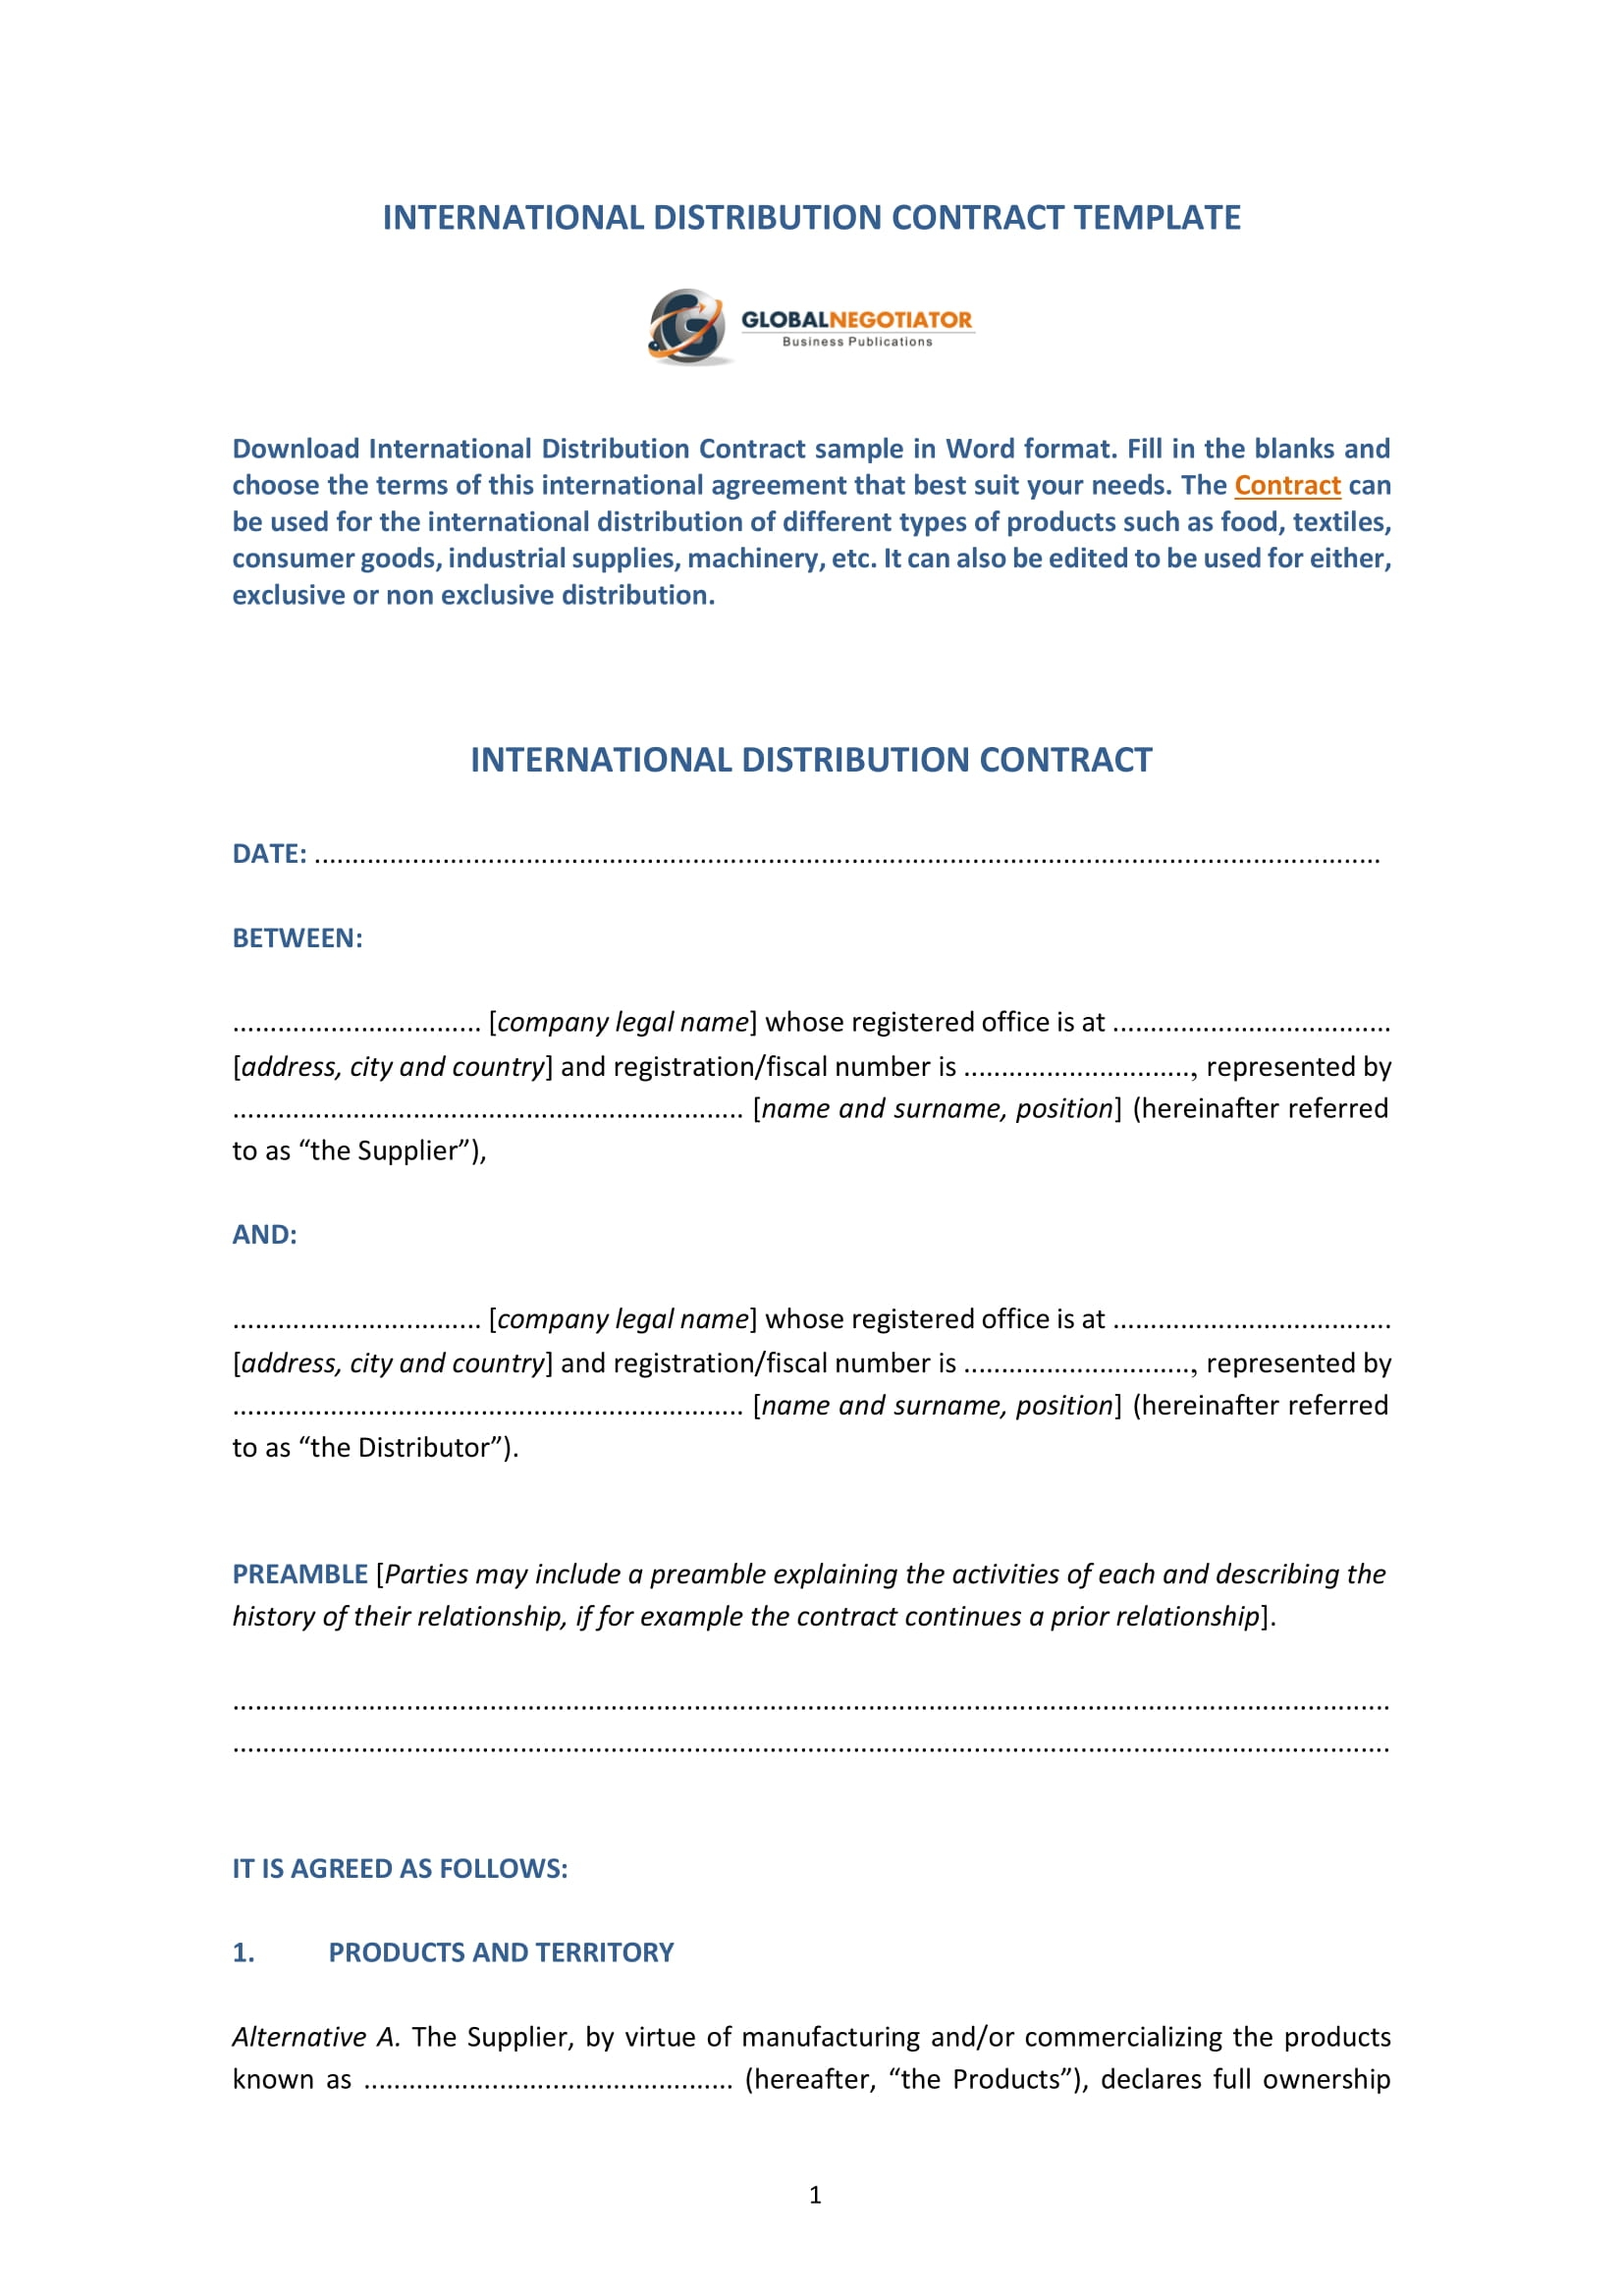 009 Amazing Distribution Agreement Template Word Image  Exclusive DistributorFull